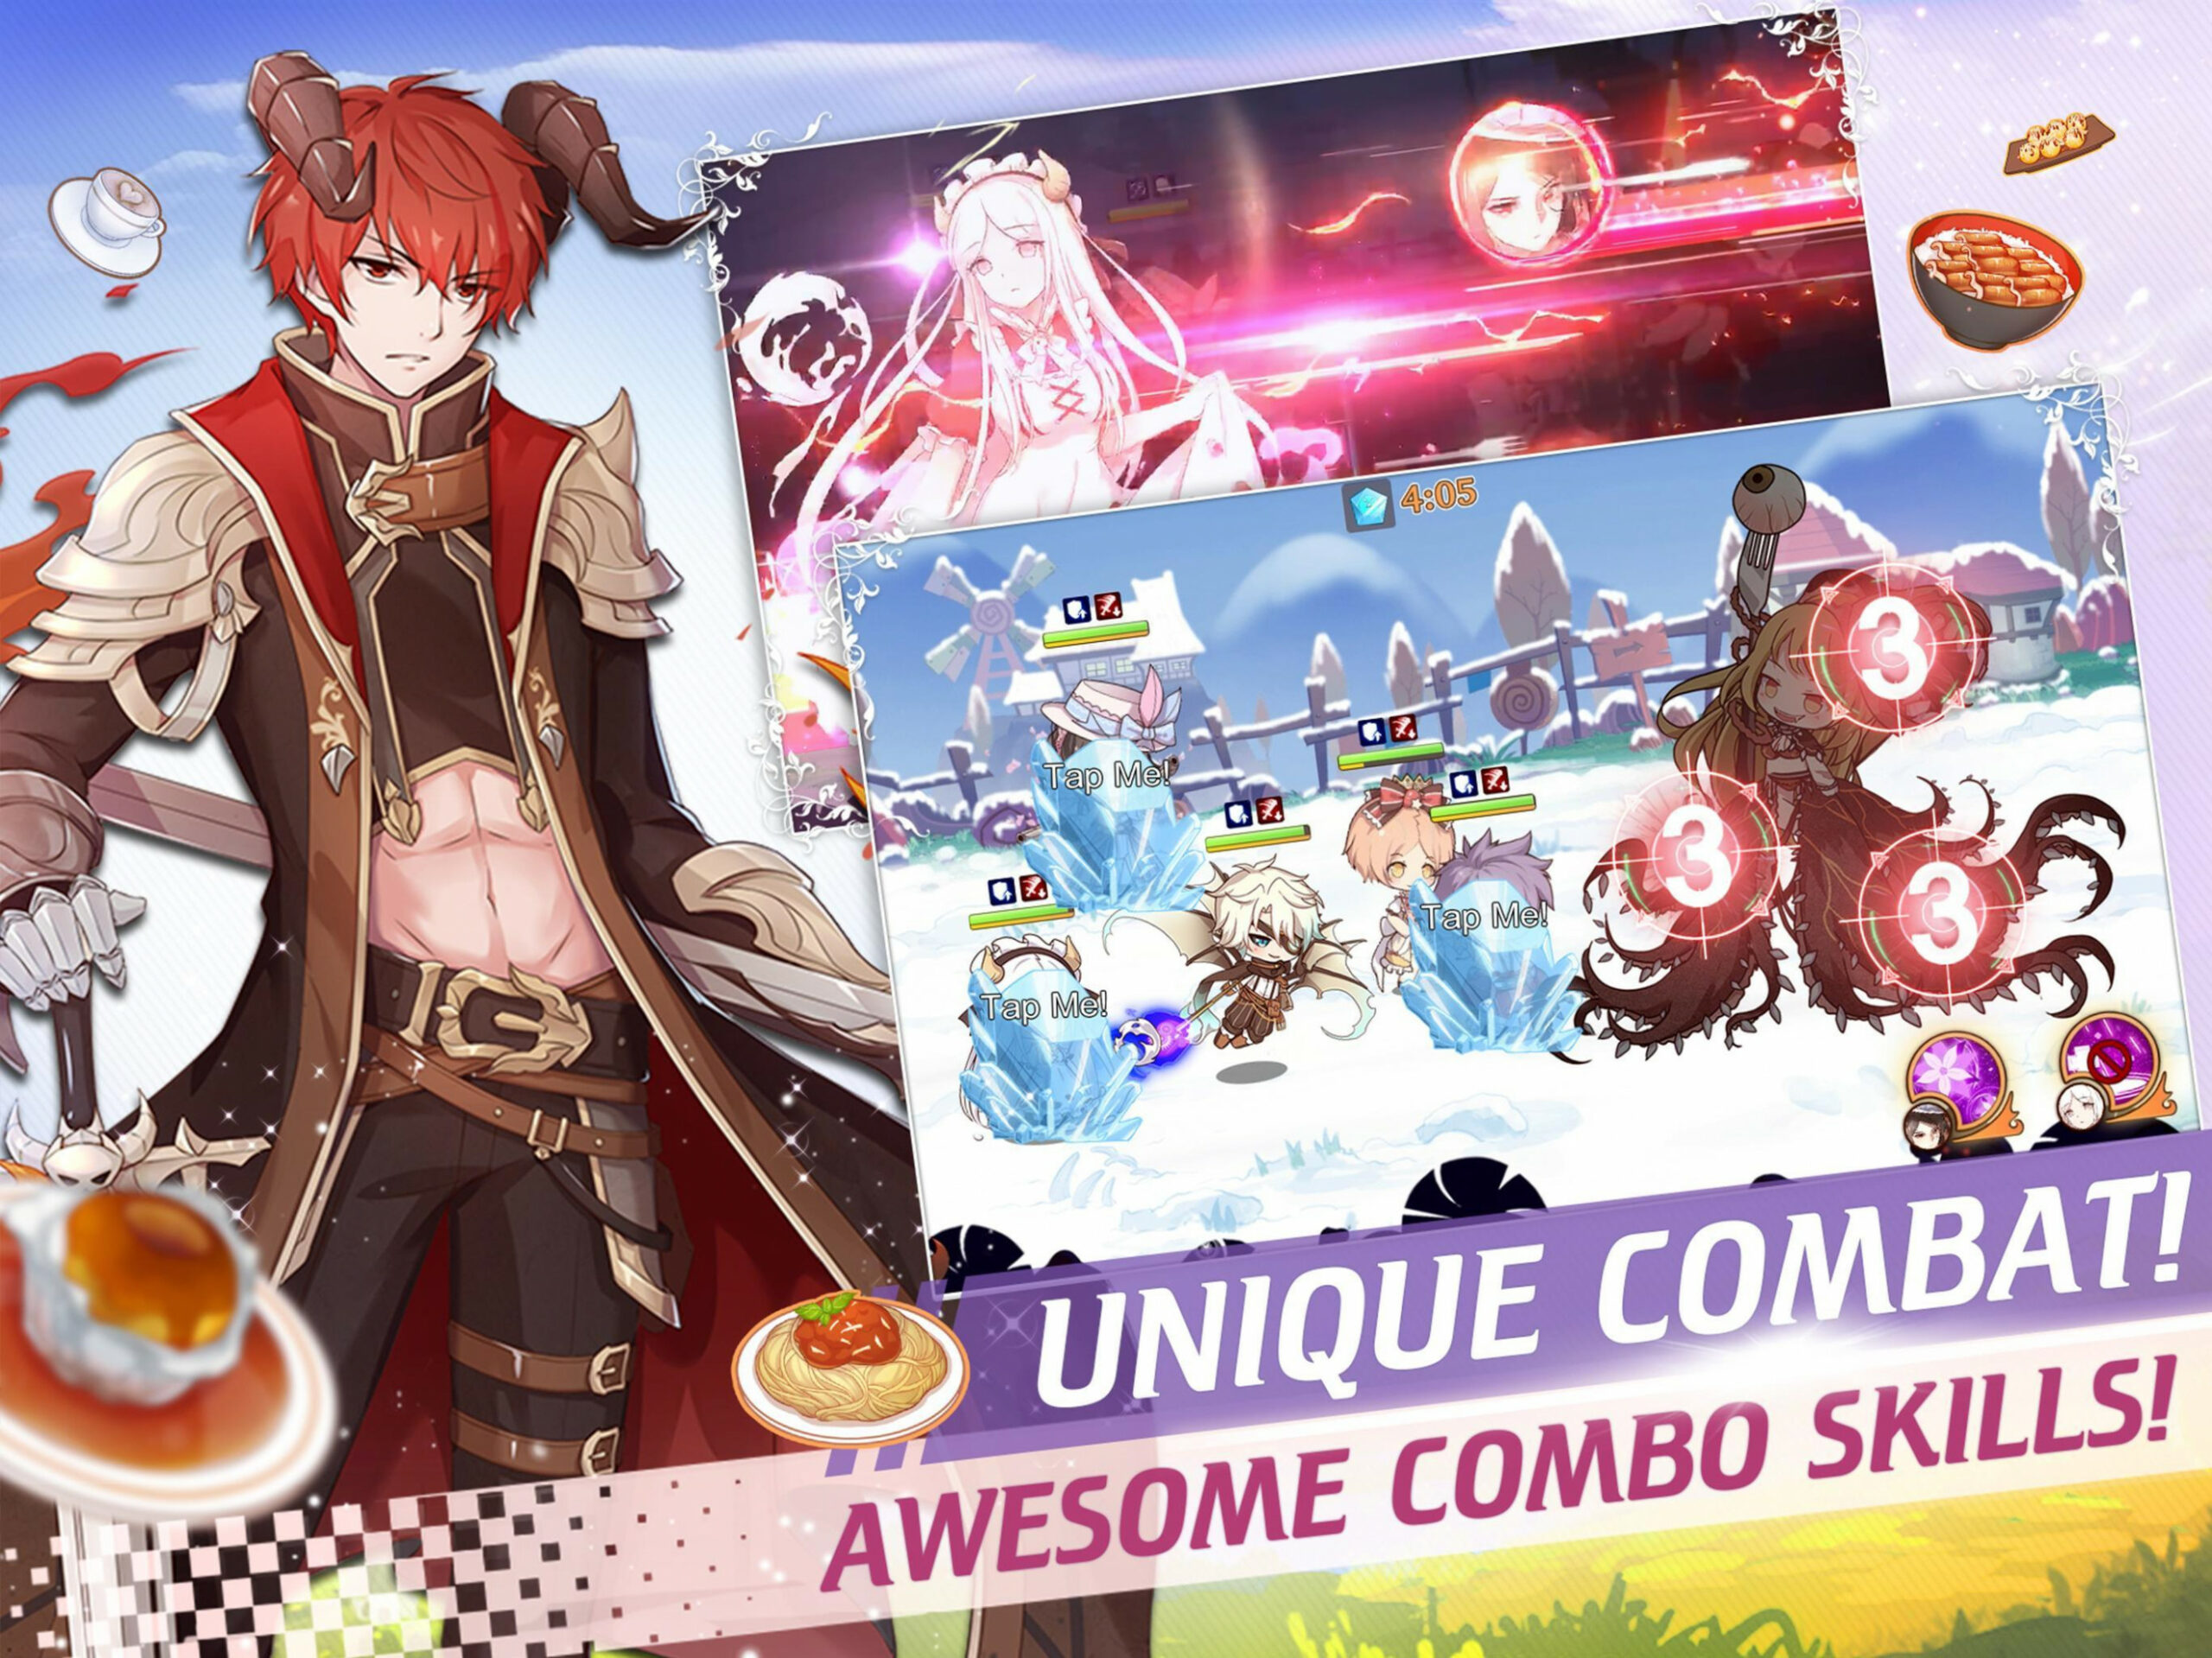 Food Fantasy for Android - APK Download - recipes in food fantasy game